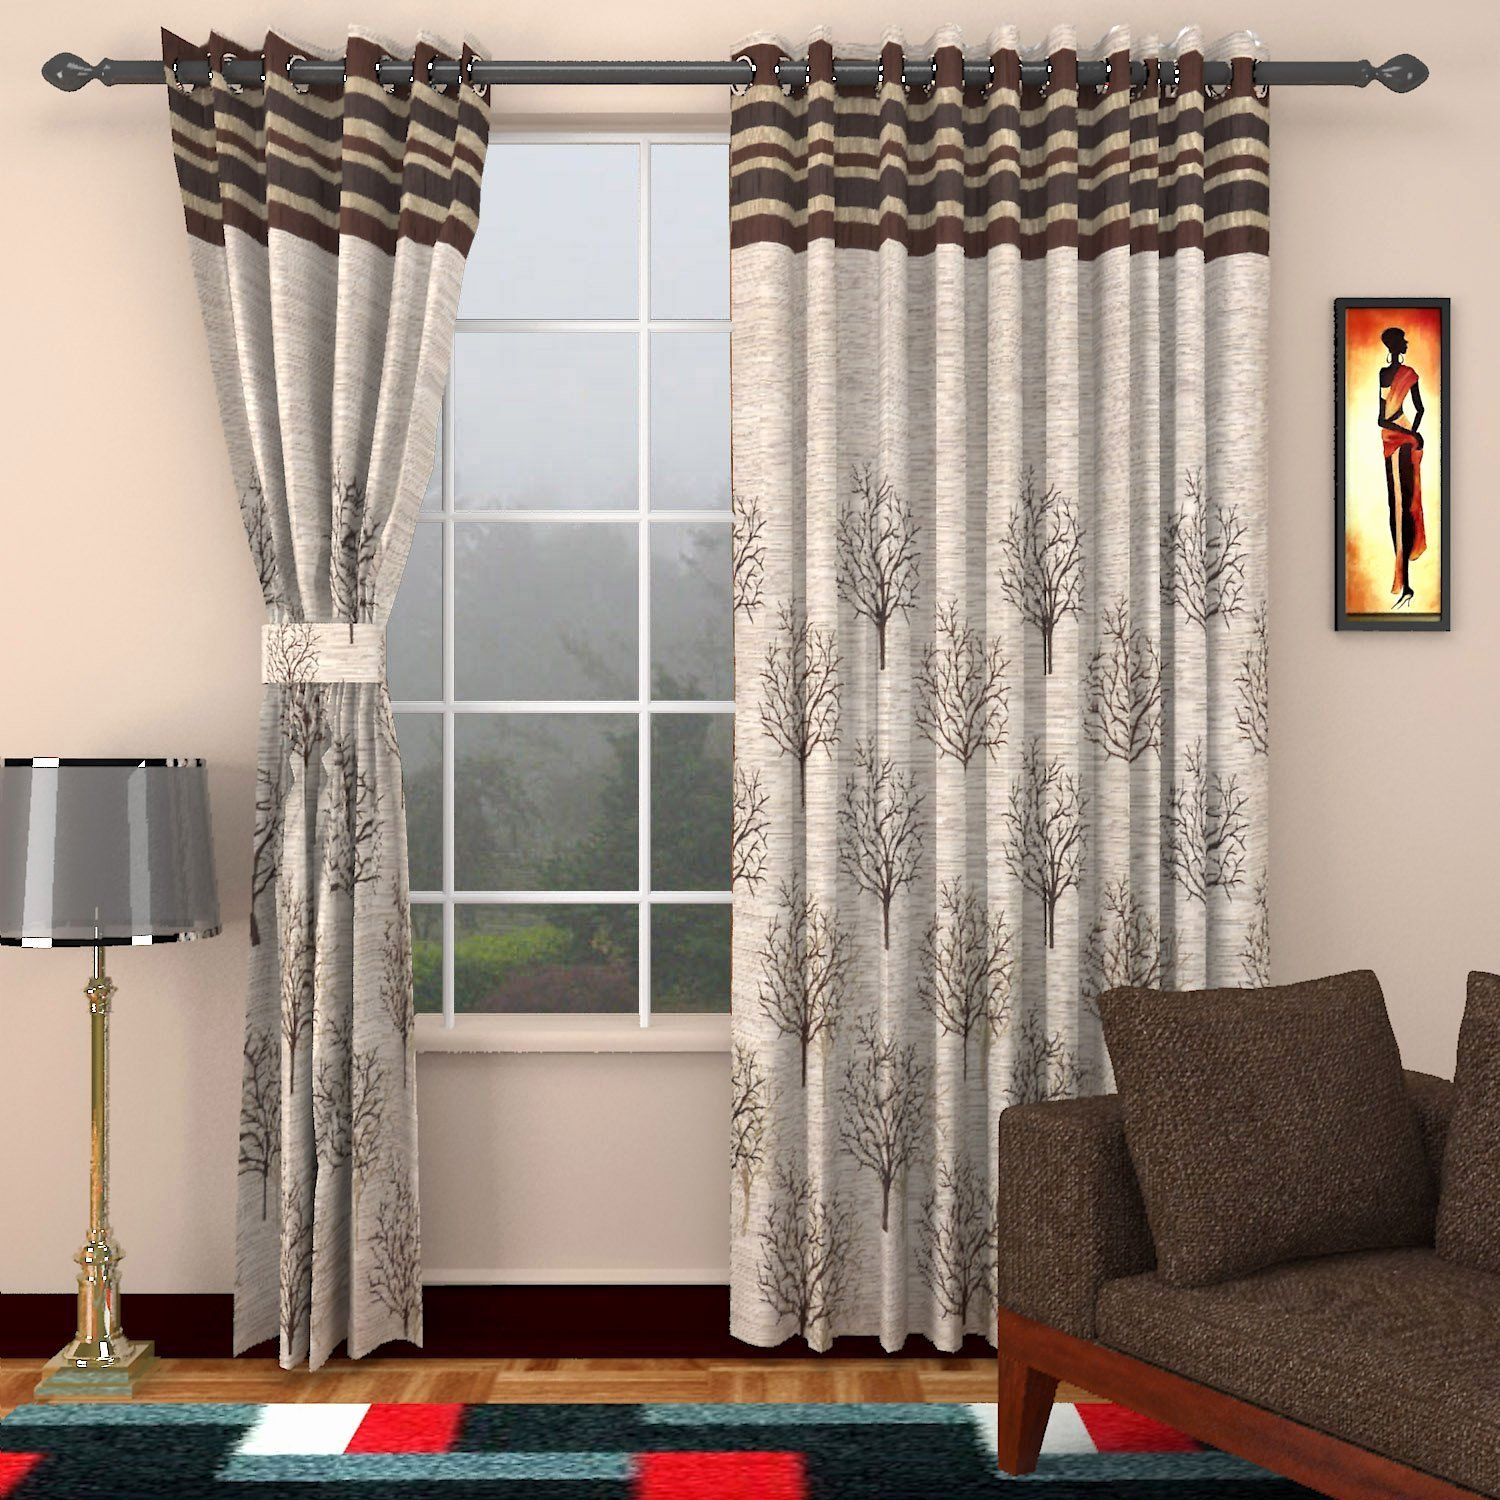 Discount Drapes Curtains Outlet Best Of Modern Jute Door Curtains Home Decor Interior Curtains In 2020 Curtains Curtain Decor Door Curtains Designs